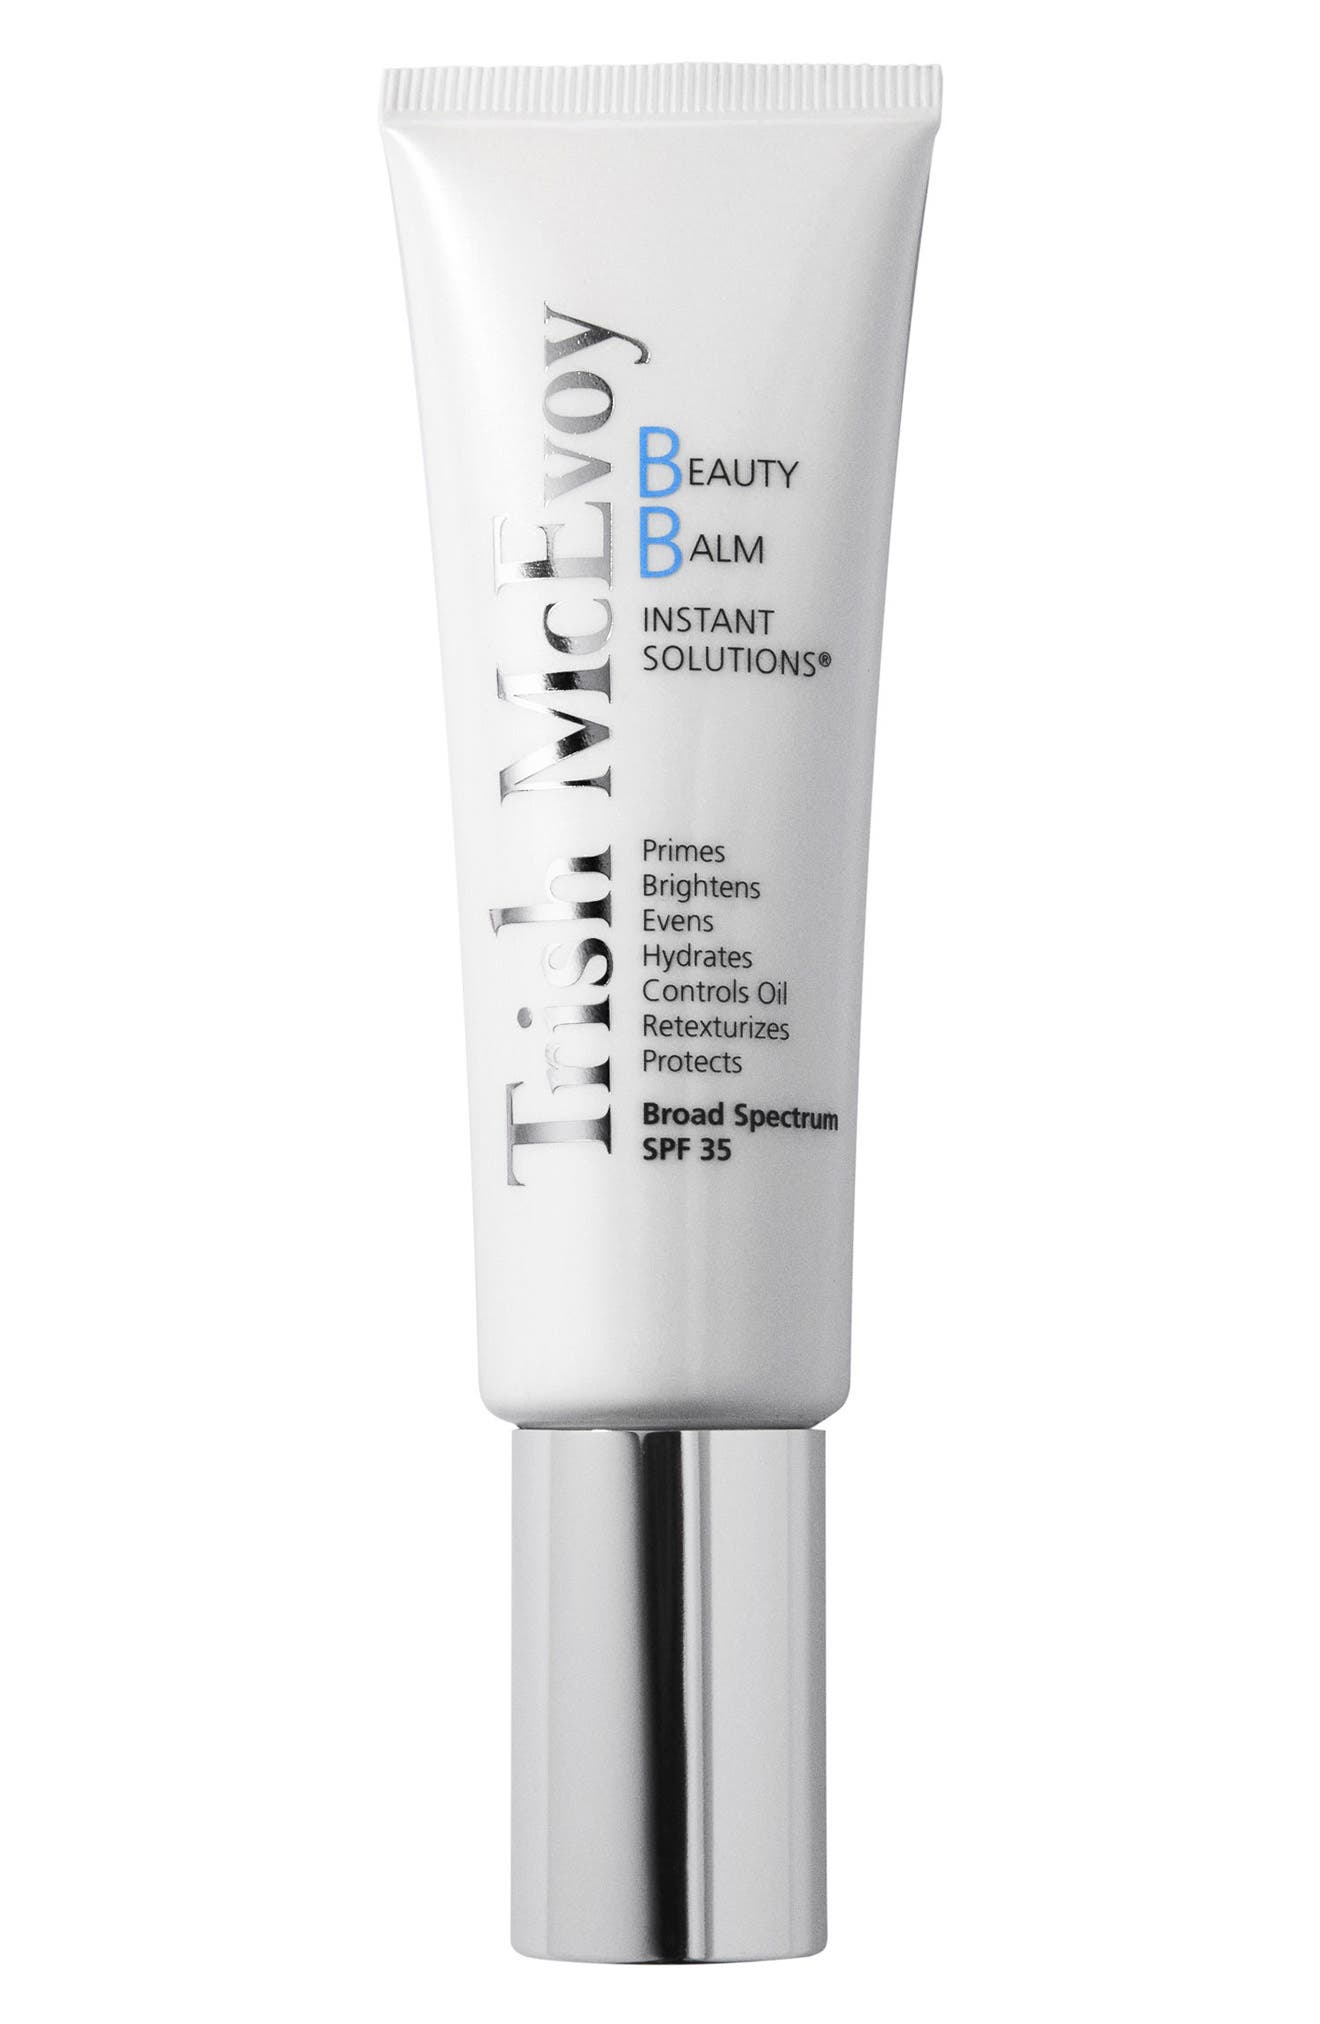 Beauty Balm Instant Solutions by Trish McEvoy #2